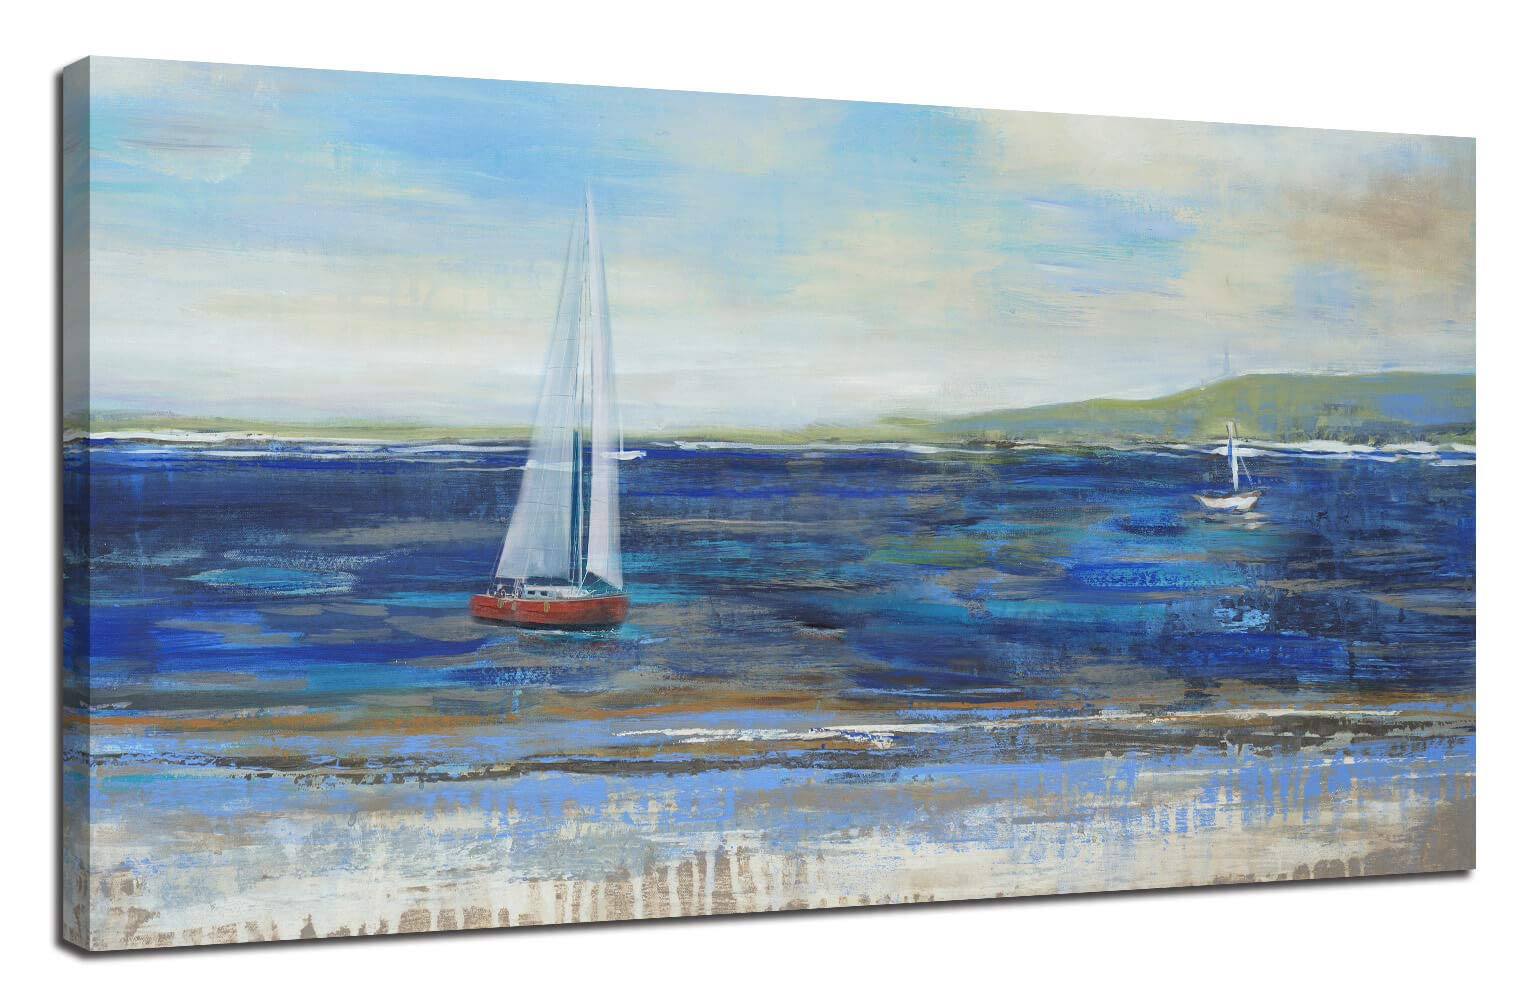 """Ardemy Canvas Wall Art Blue Abstract Seascape Painting Large Size One Panel Picture Prints, Modern Landscape Sail Boat in Ocean Artwork Framed for Living Room Bedroom Home Office Decor 48""""x24"""""""